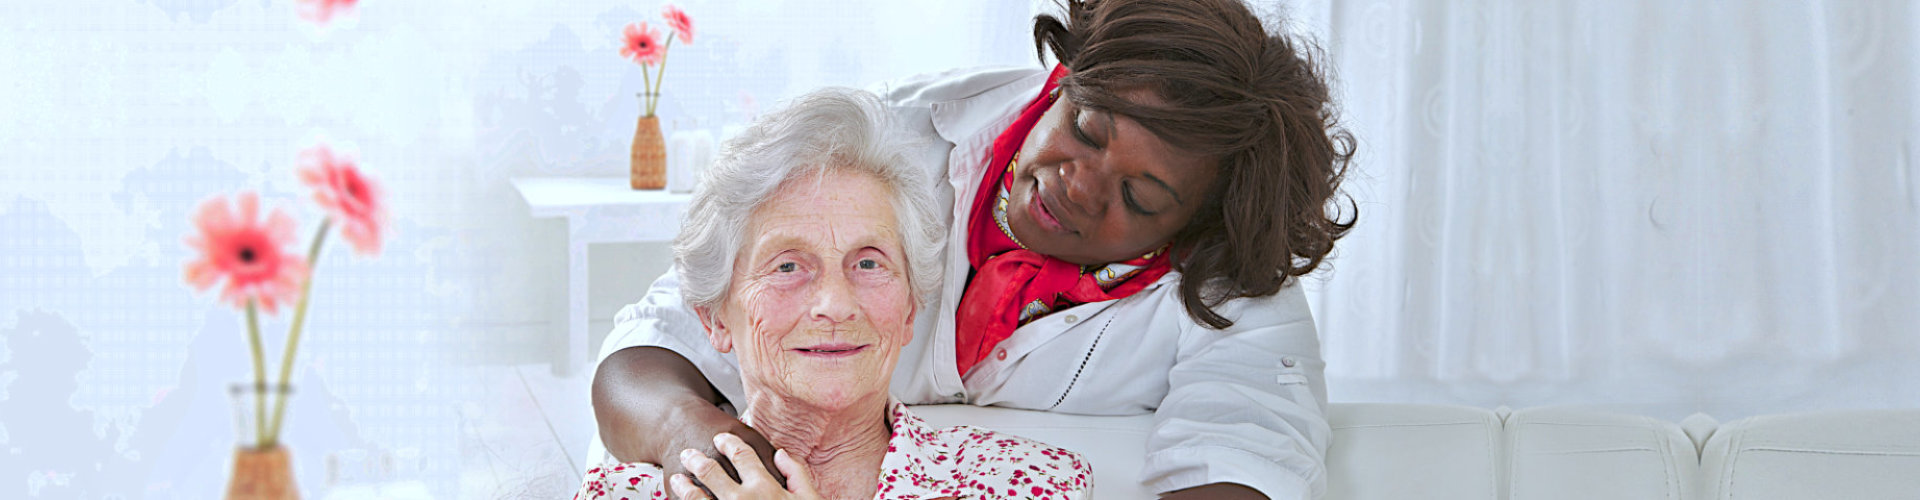 nurse hug senior woman smiling